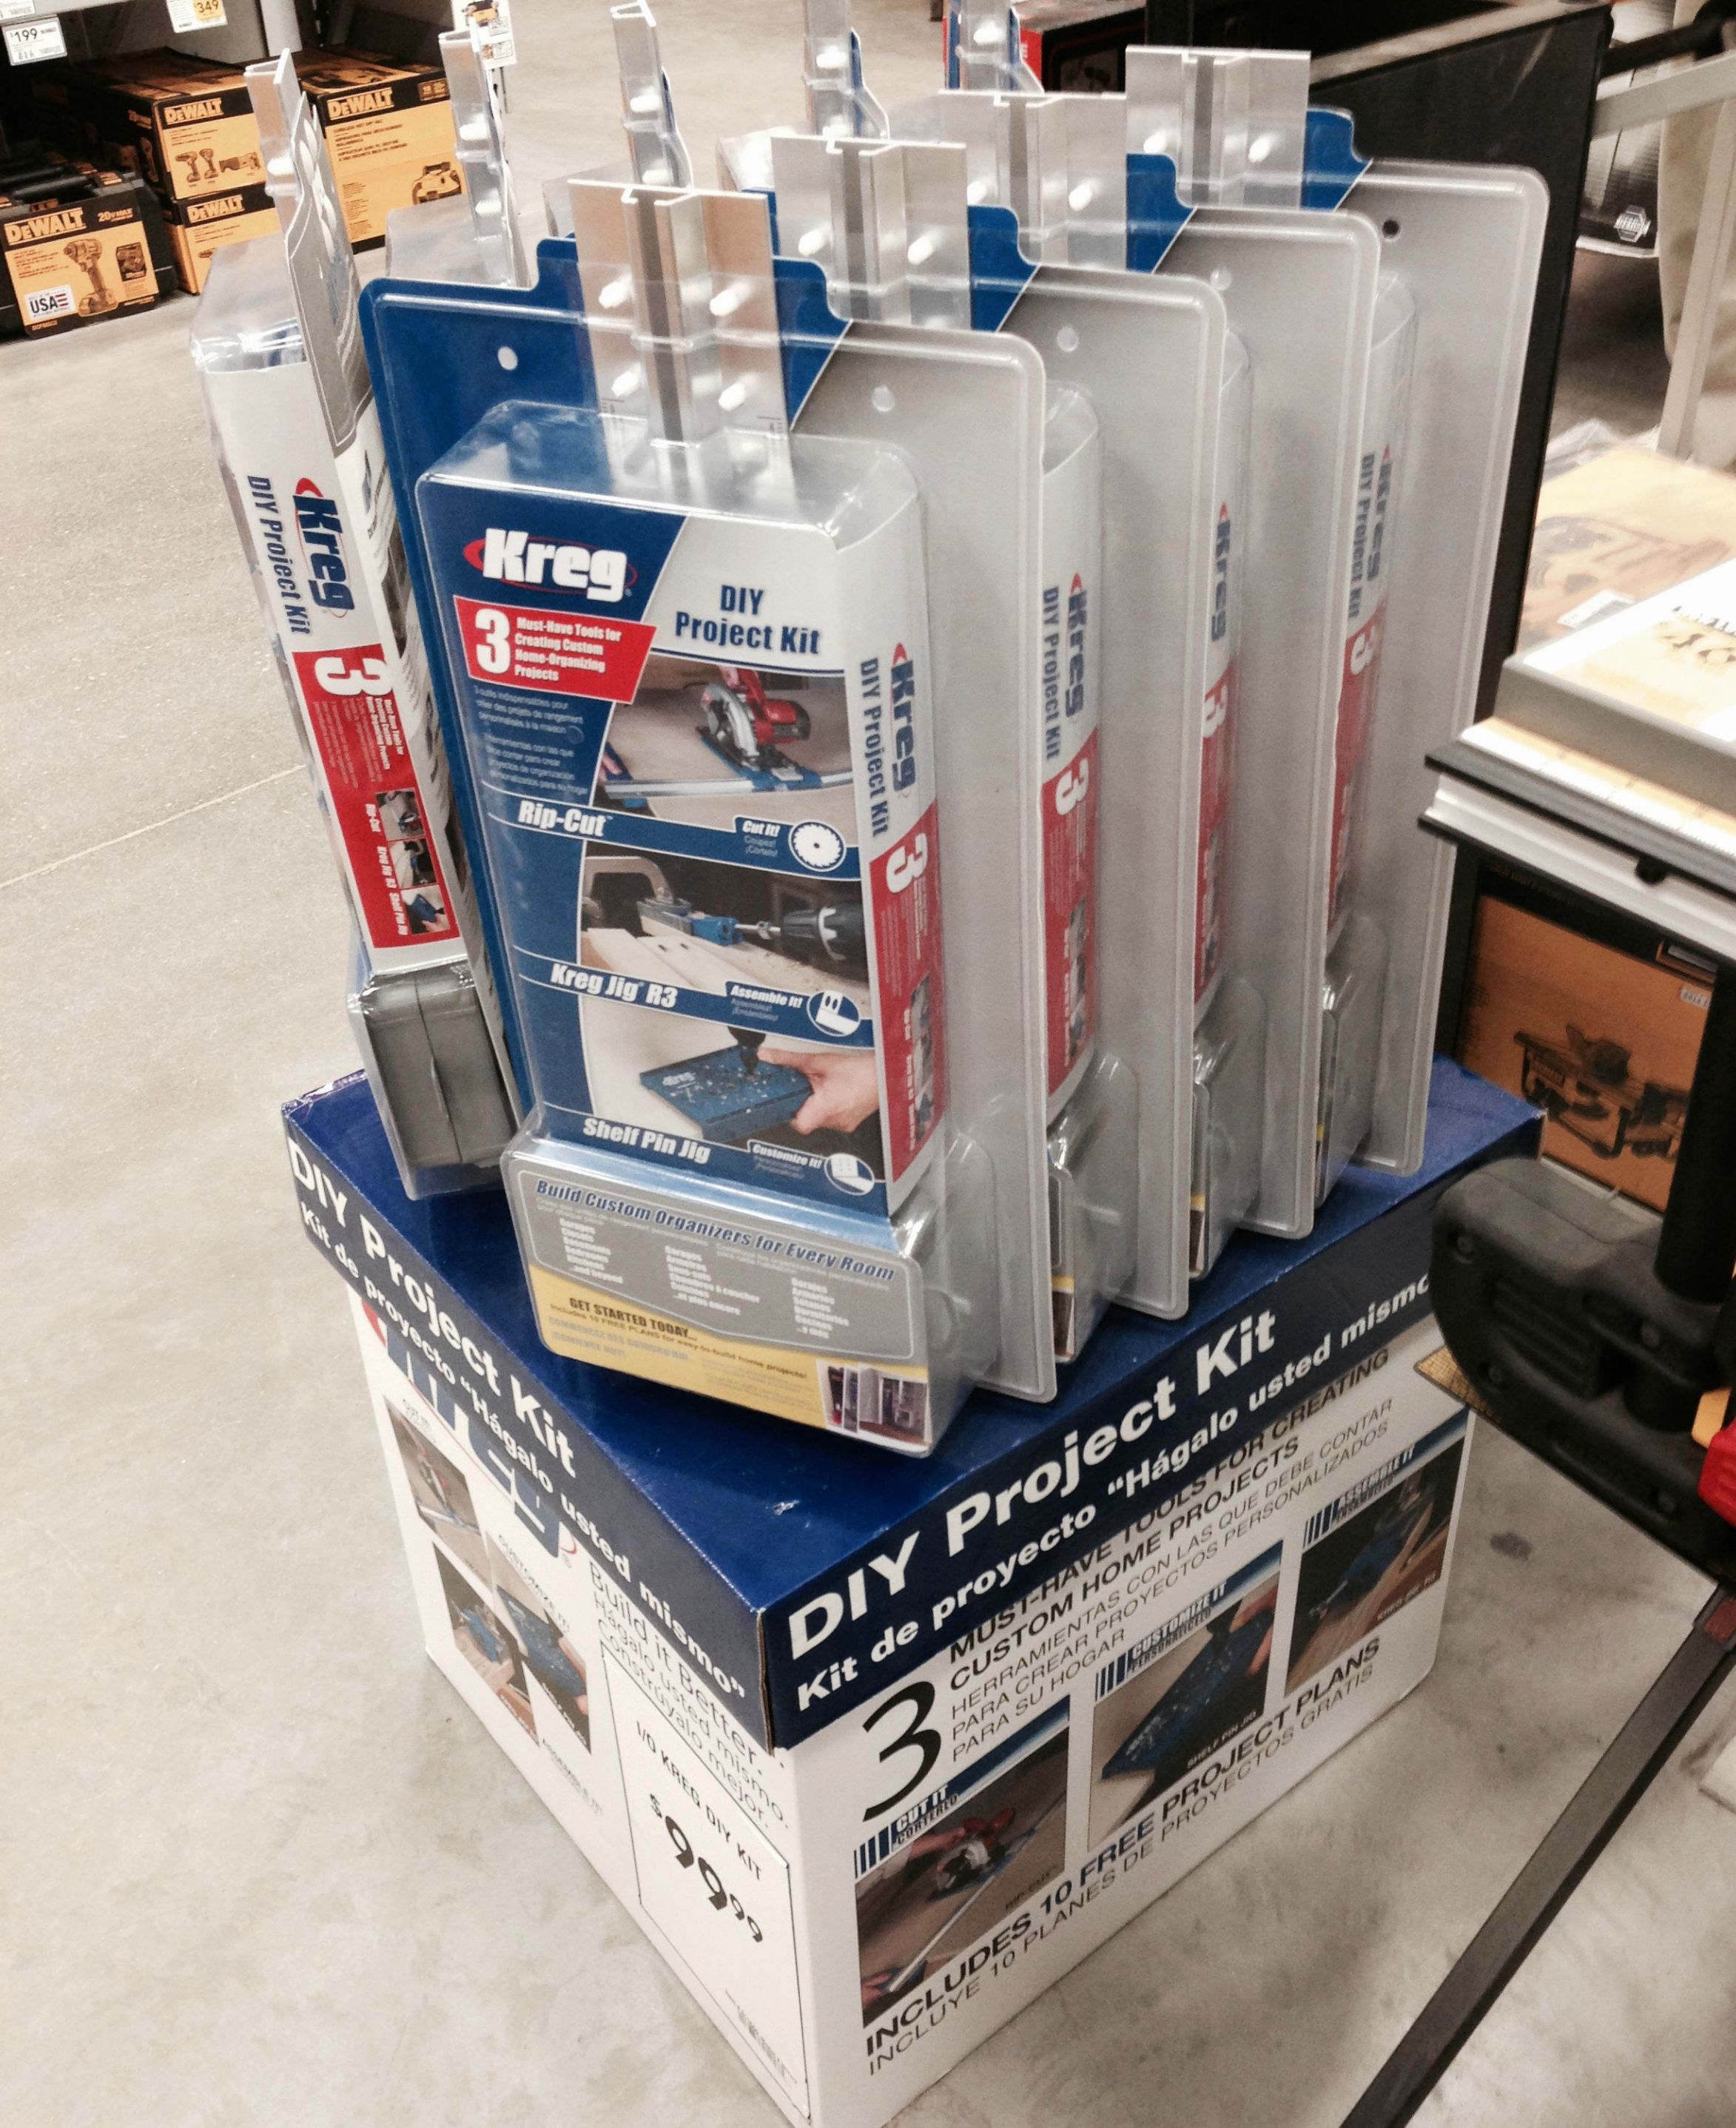 Spotted the all new kreg diy project kit at lowes search for a spotted the all new kreg diy project kit at lowes search for a kreg dealer near you httpskregtoolfind a dealerdefaultpxsource1669 solutioingenieria Image collections